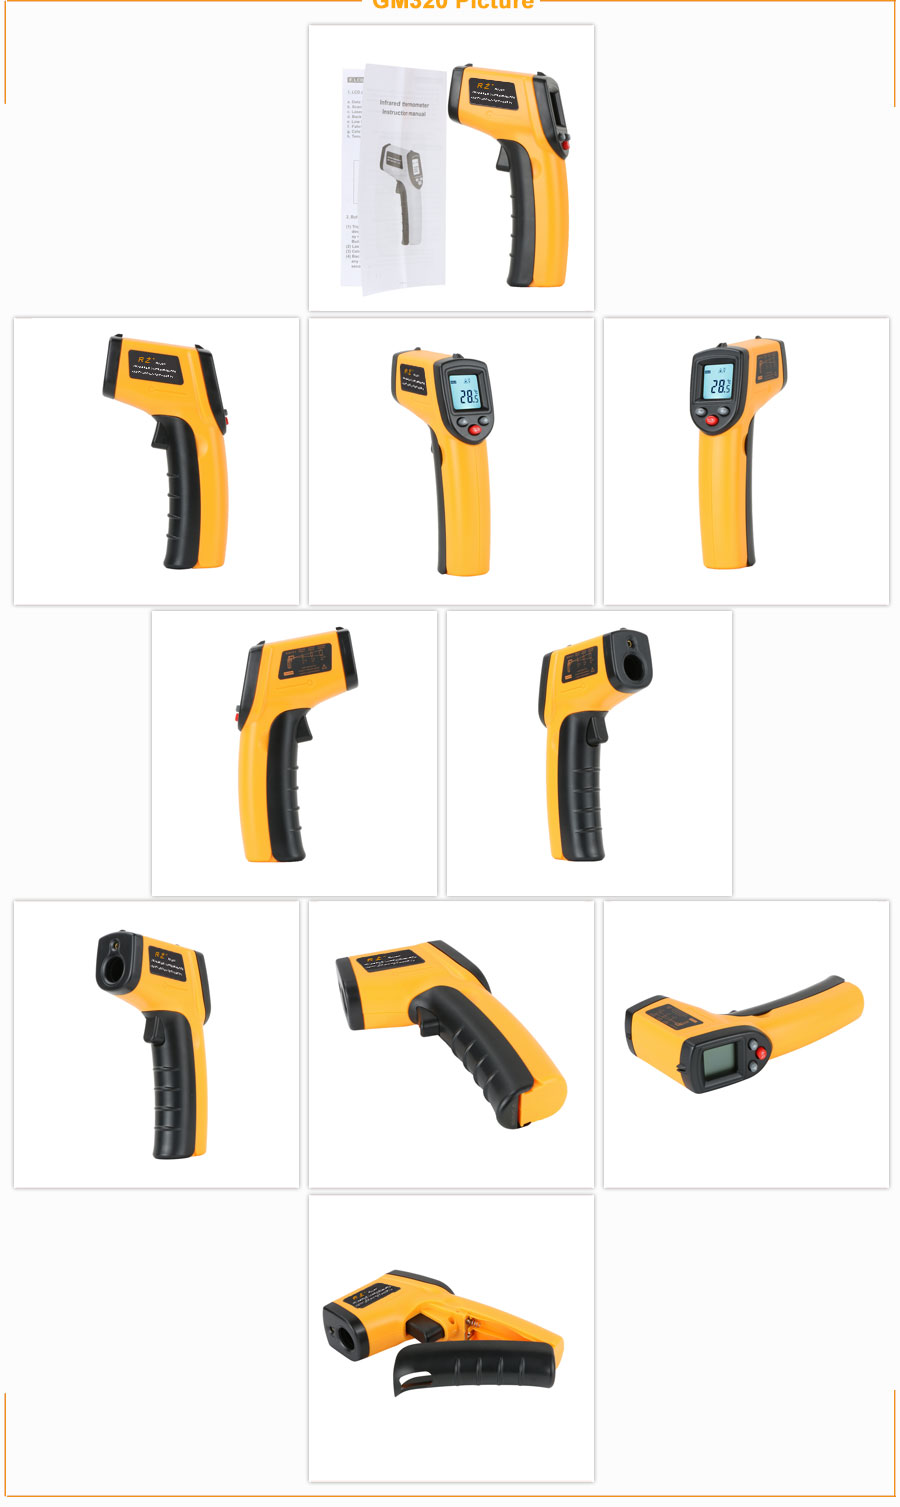 H76610f55b94d44ef9cba727f74abb1e0U RZ IR Infrared Thermometer Thermal Imager Handheld Digital Electronic Outdoor Non-Contact Laser Pyrometer Point Gun Thermometer